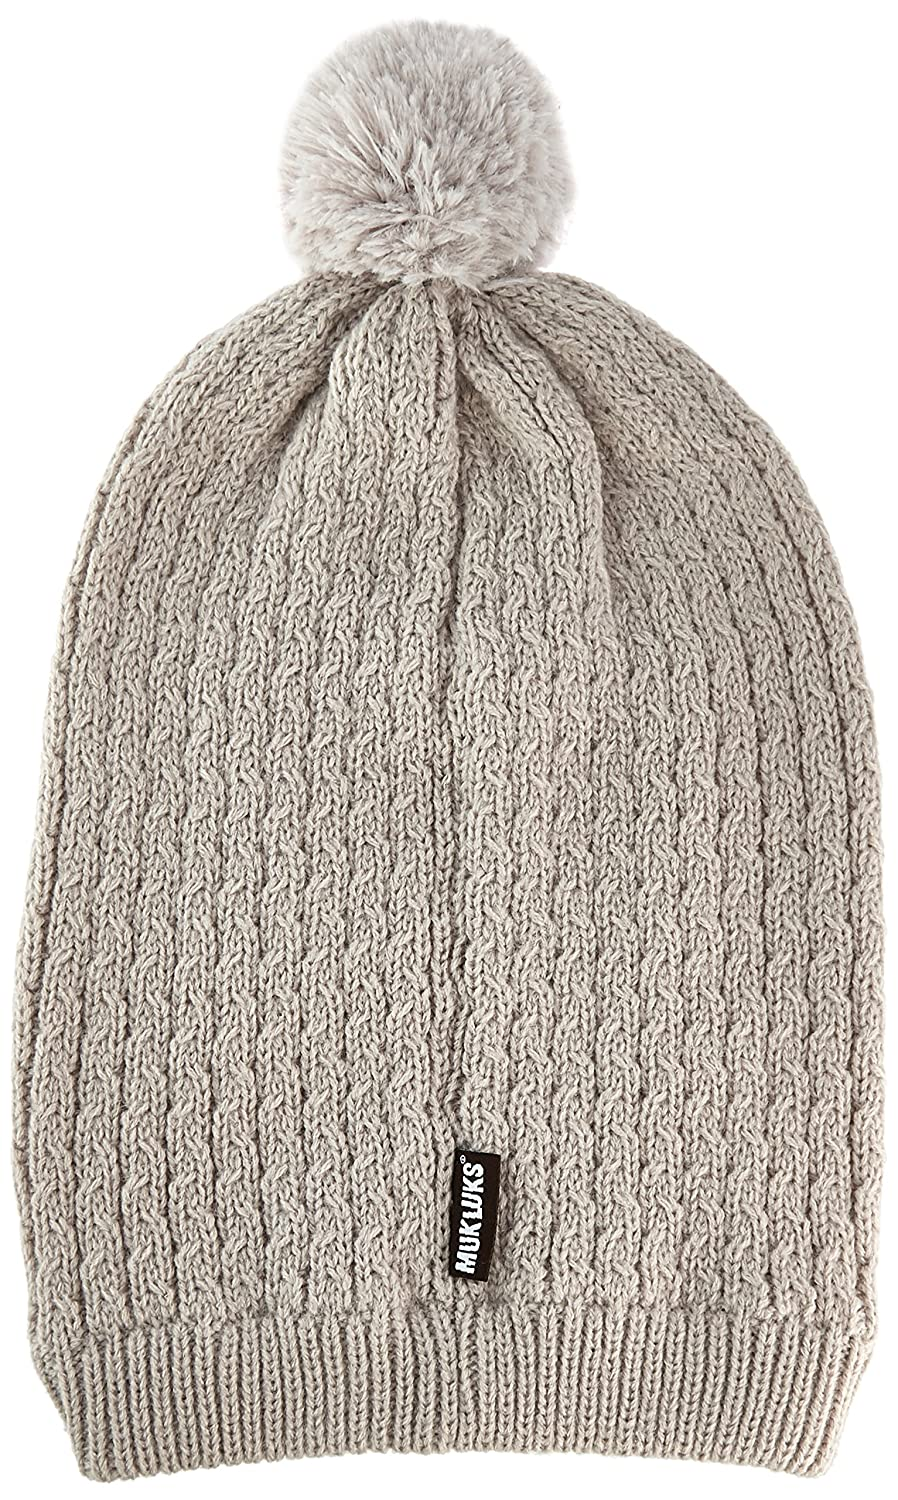 MUK LUKS Womens You are So Beautiful Slouch Beanie-Wavy Cable Light Purple One Size Muk Luks Women/'s Accessories 0034375530-OS